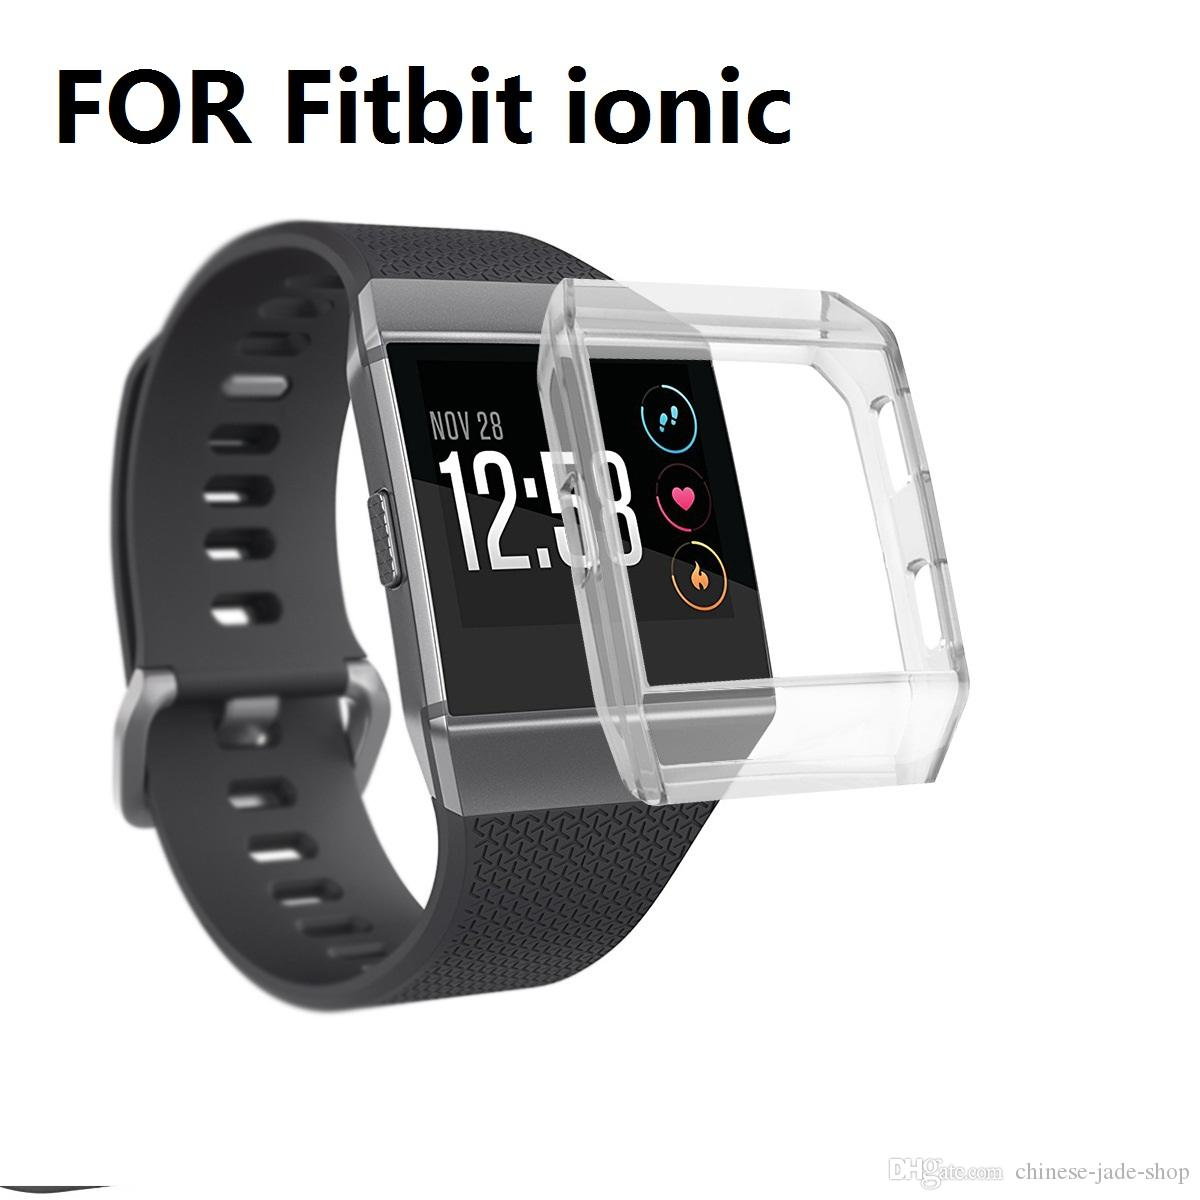 Replacement SOFT TPU Protect Case Cover For Fitbit Ionic Smart Watches